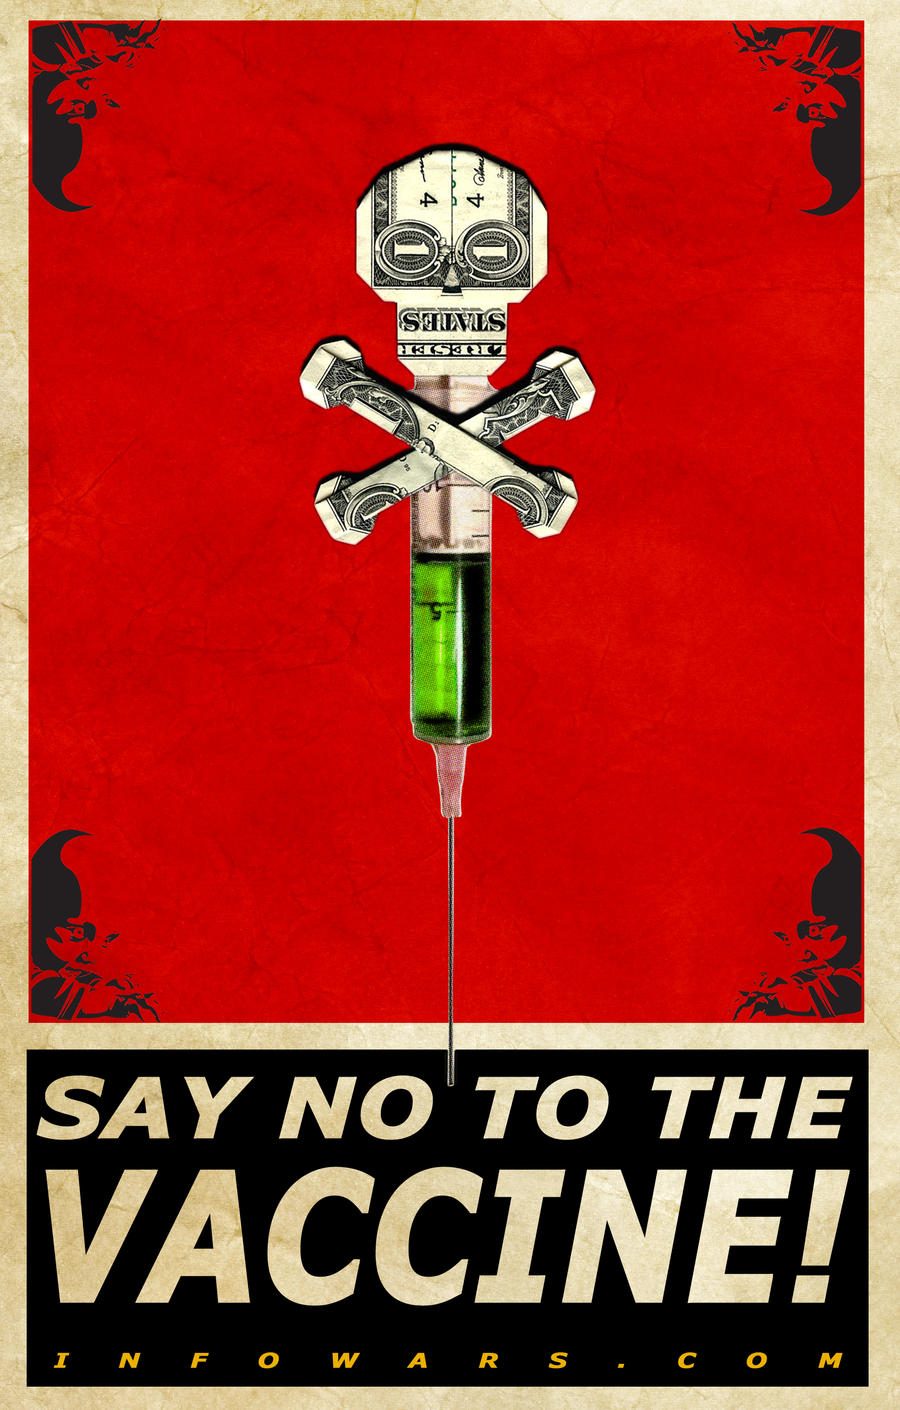 Say no to the vaccine by Ade5 on DeviantArt